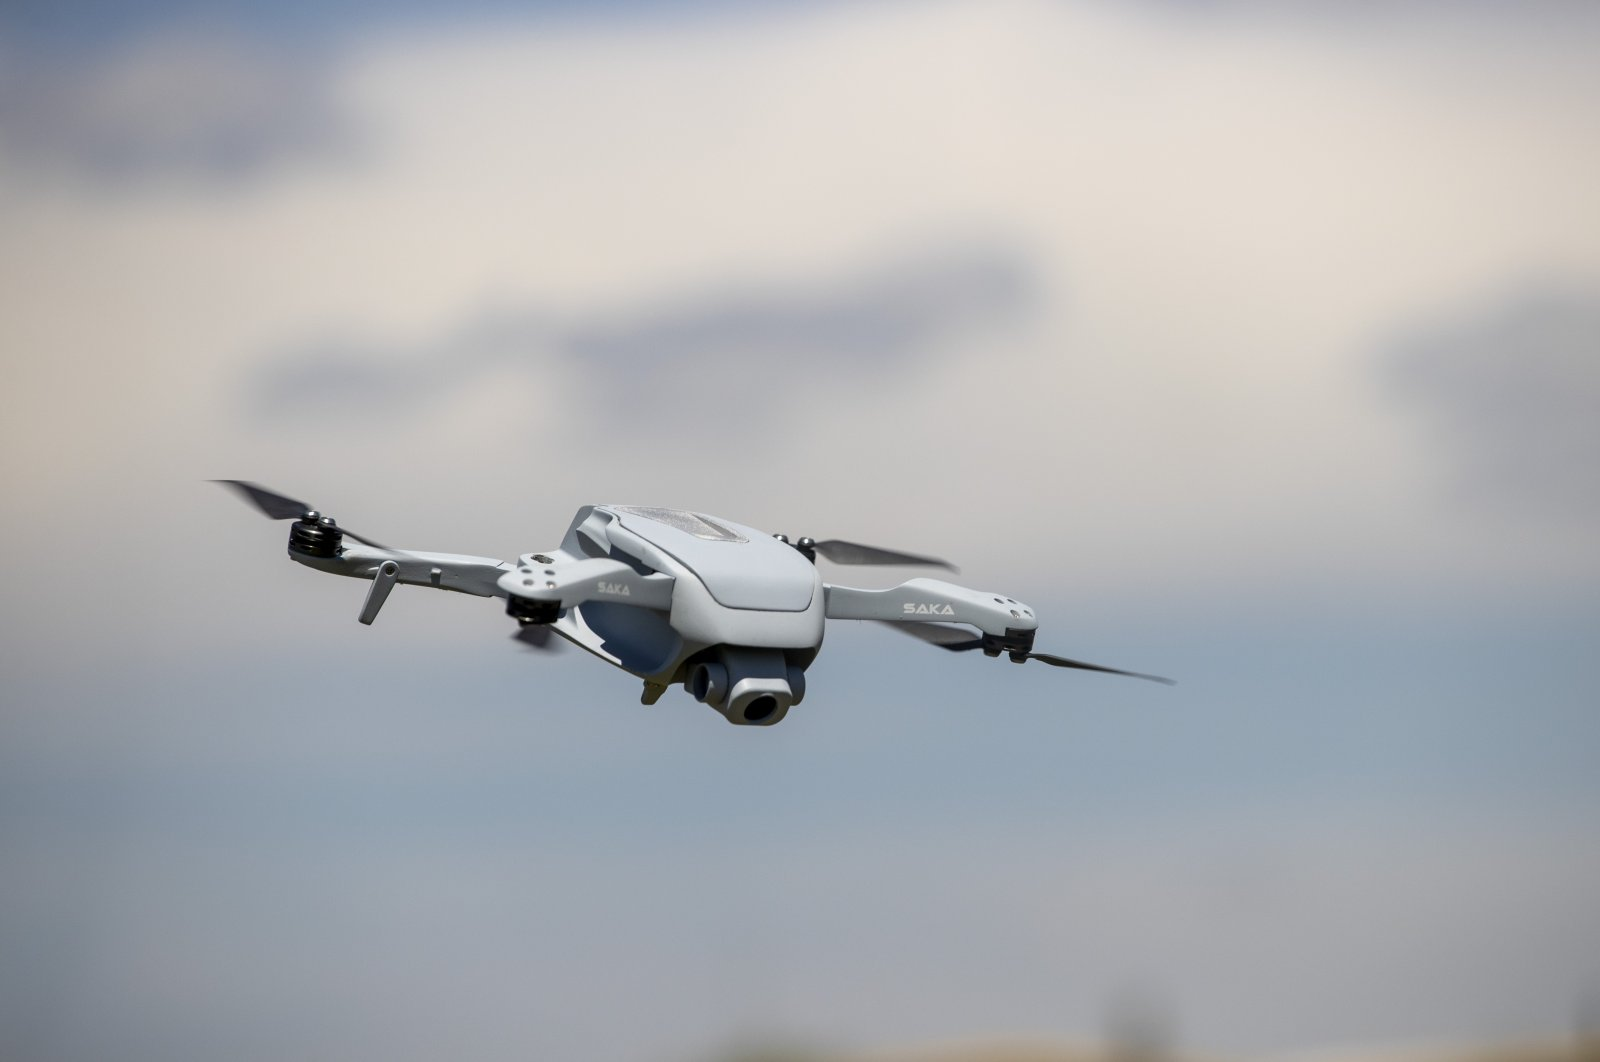 Aselsan's micro UAV, Saka, seen in the air during the test flight in the photo provided on May 18, 2021. (AA Photo)